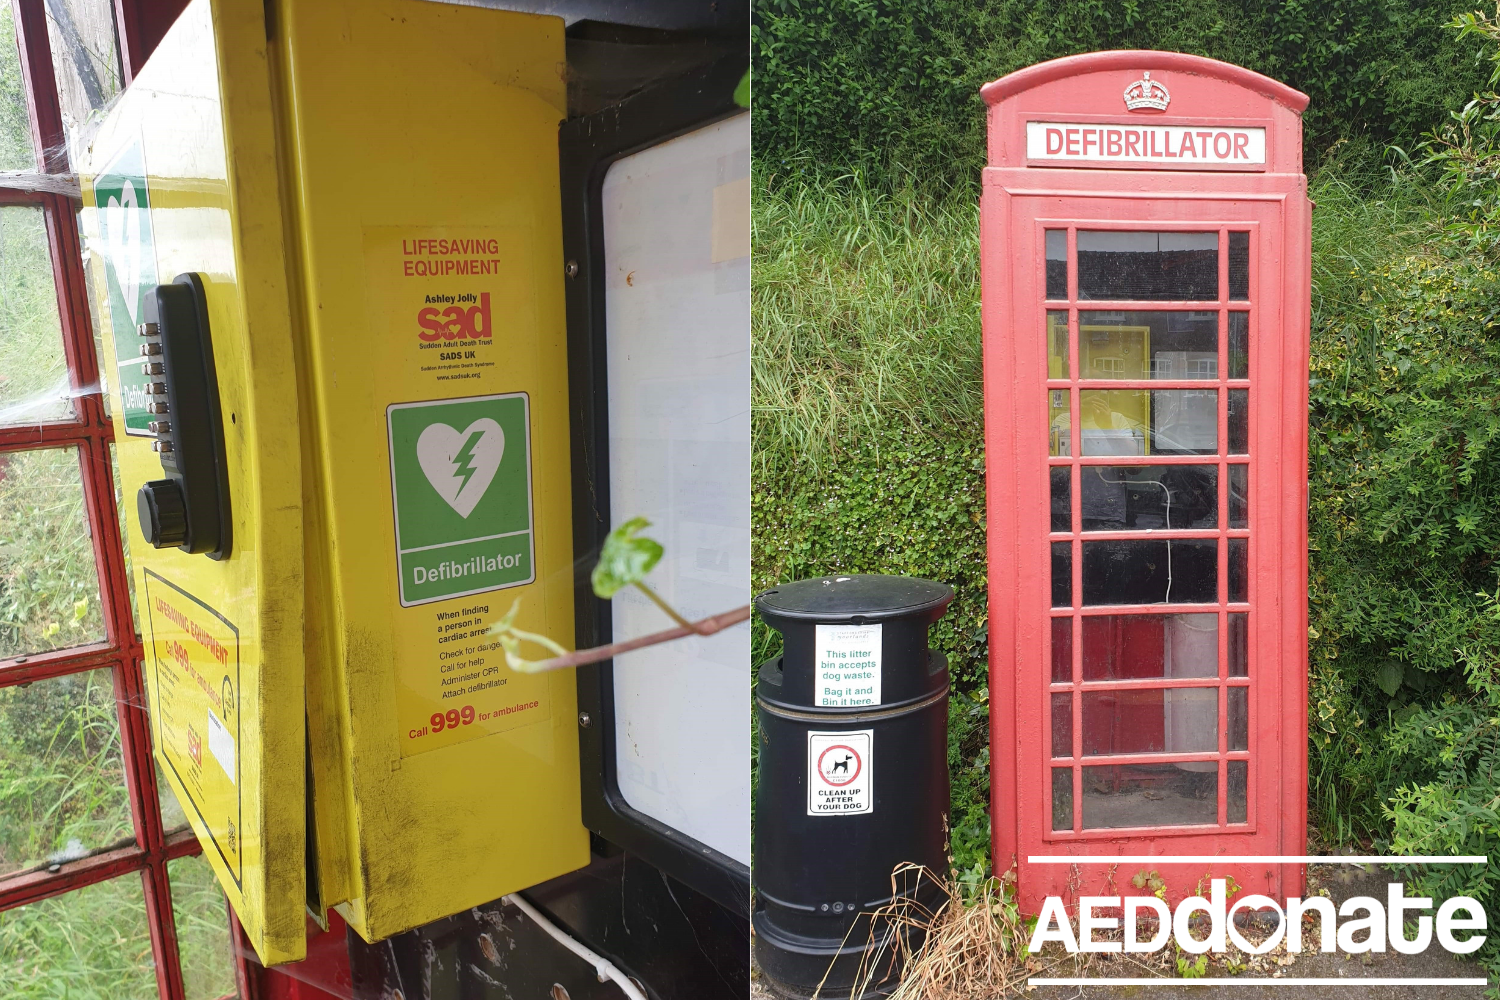 Loan unit provided after vandals steal defibrillator